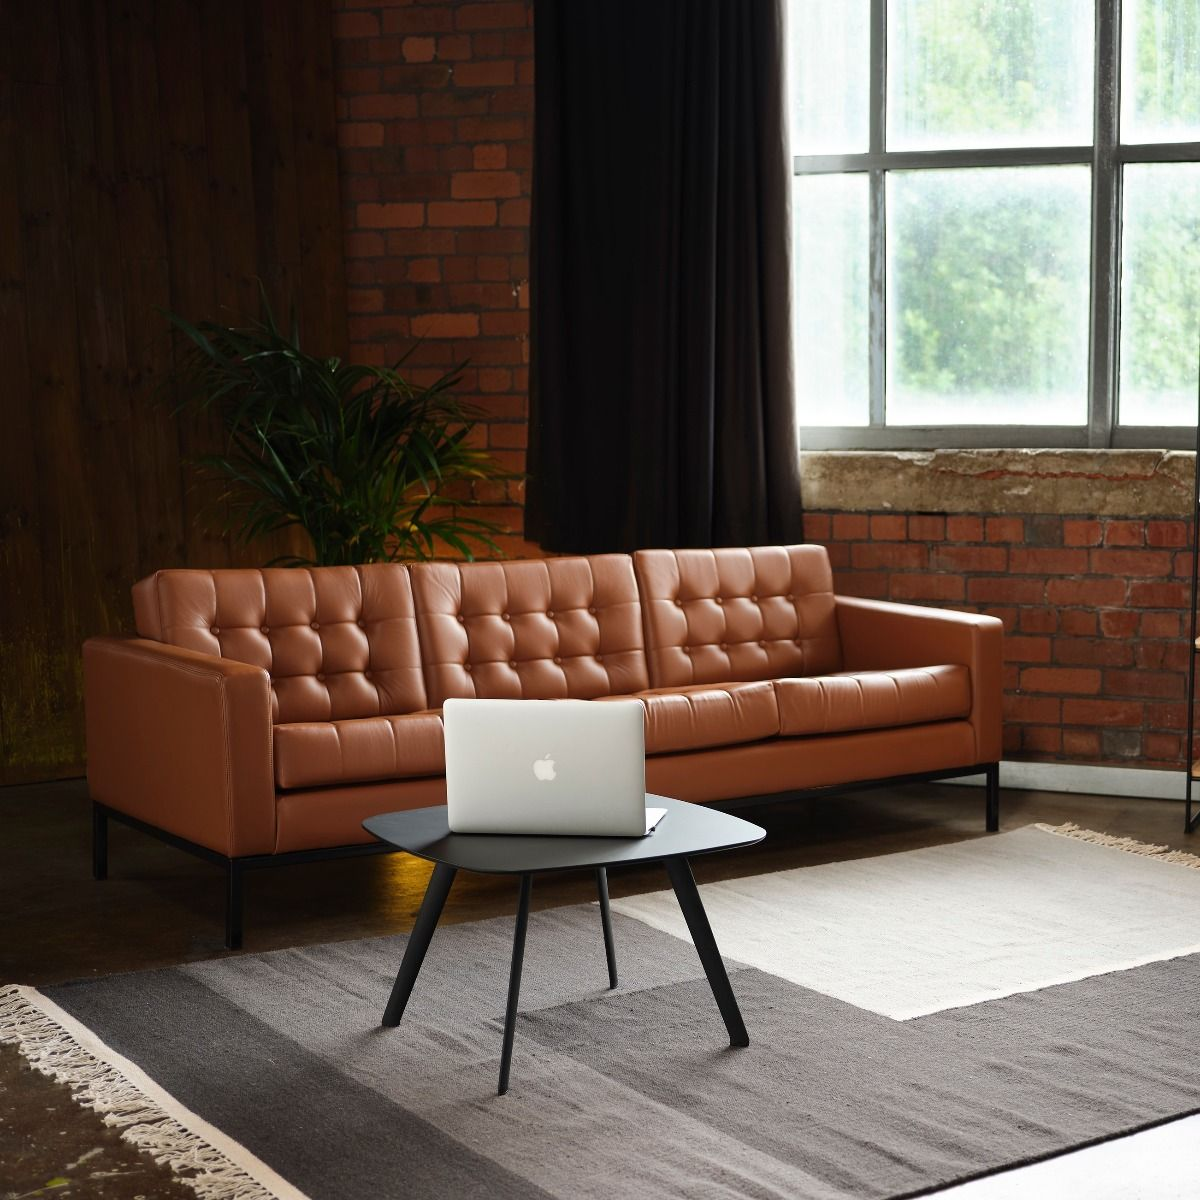 Robin Day Club sofa in Copper brown leather with coffee table and laptop